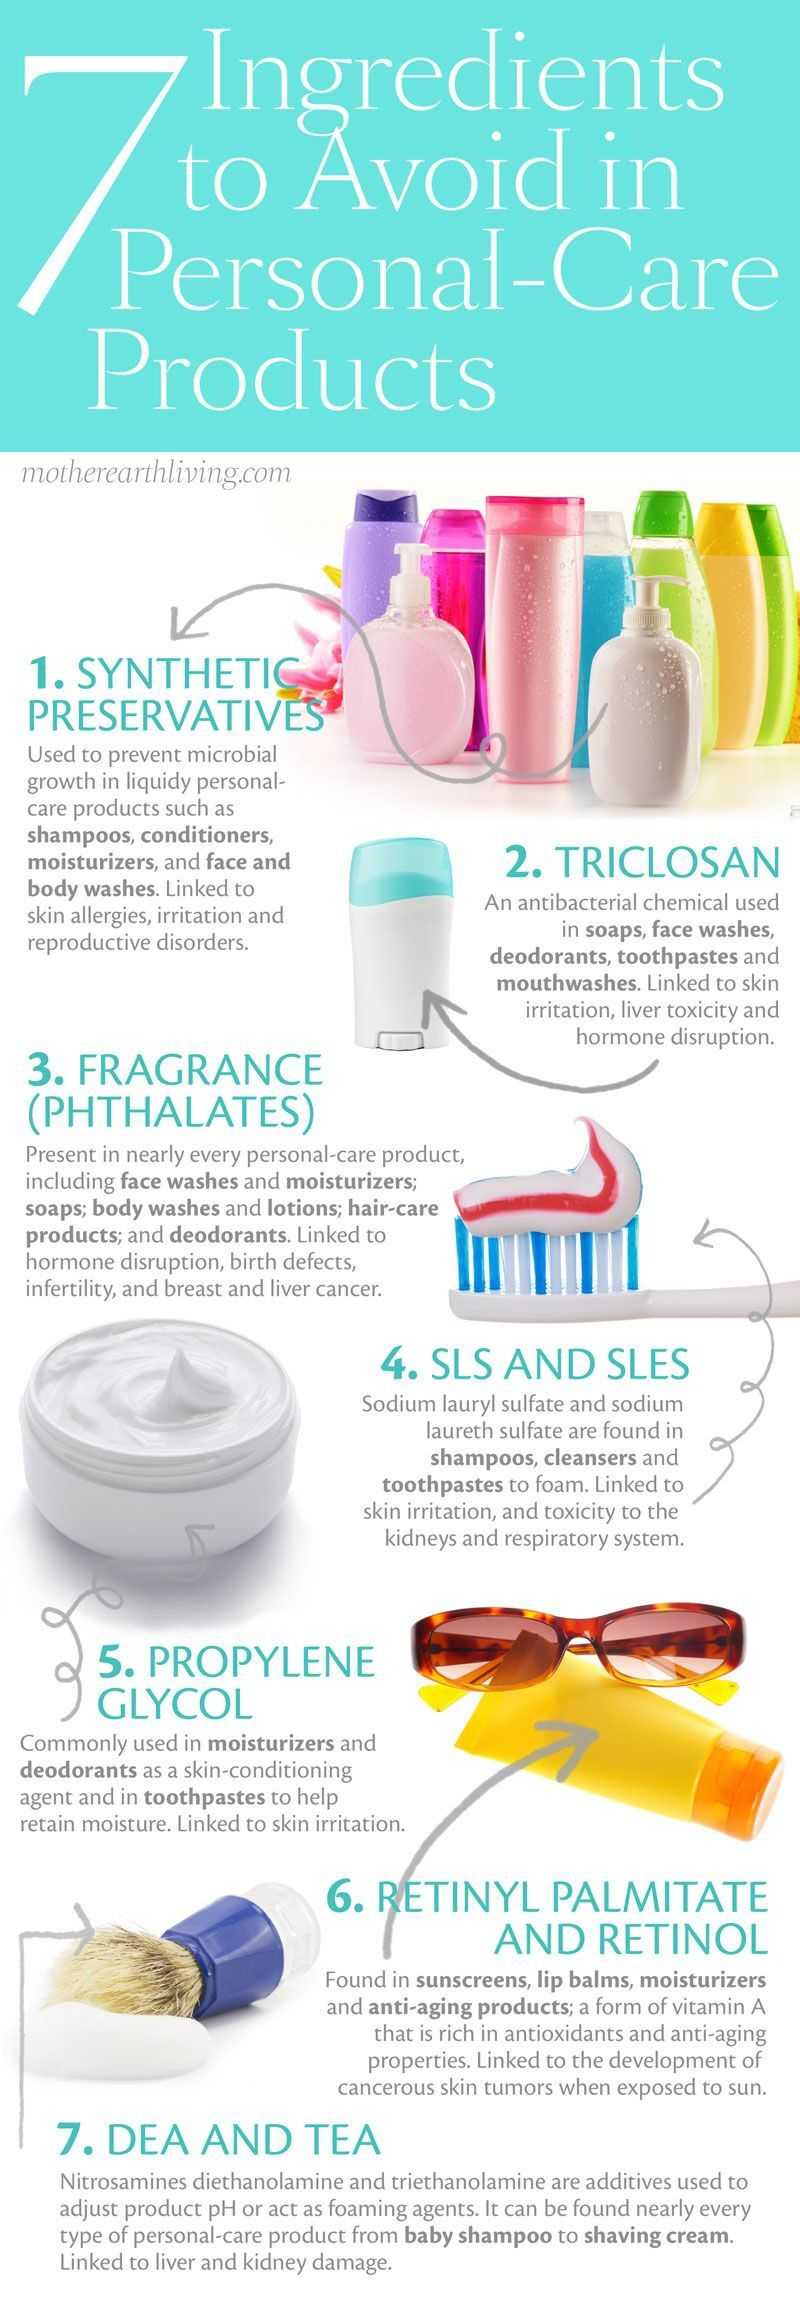 7 Ingredients to Avoid In Personal-Care Products